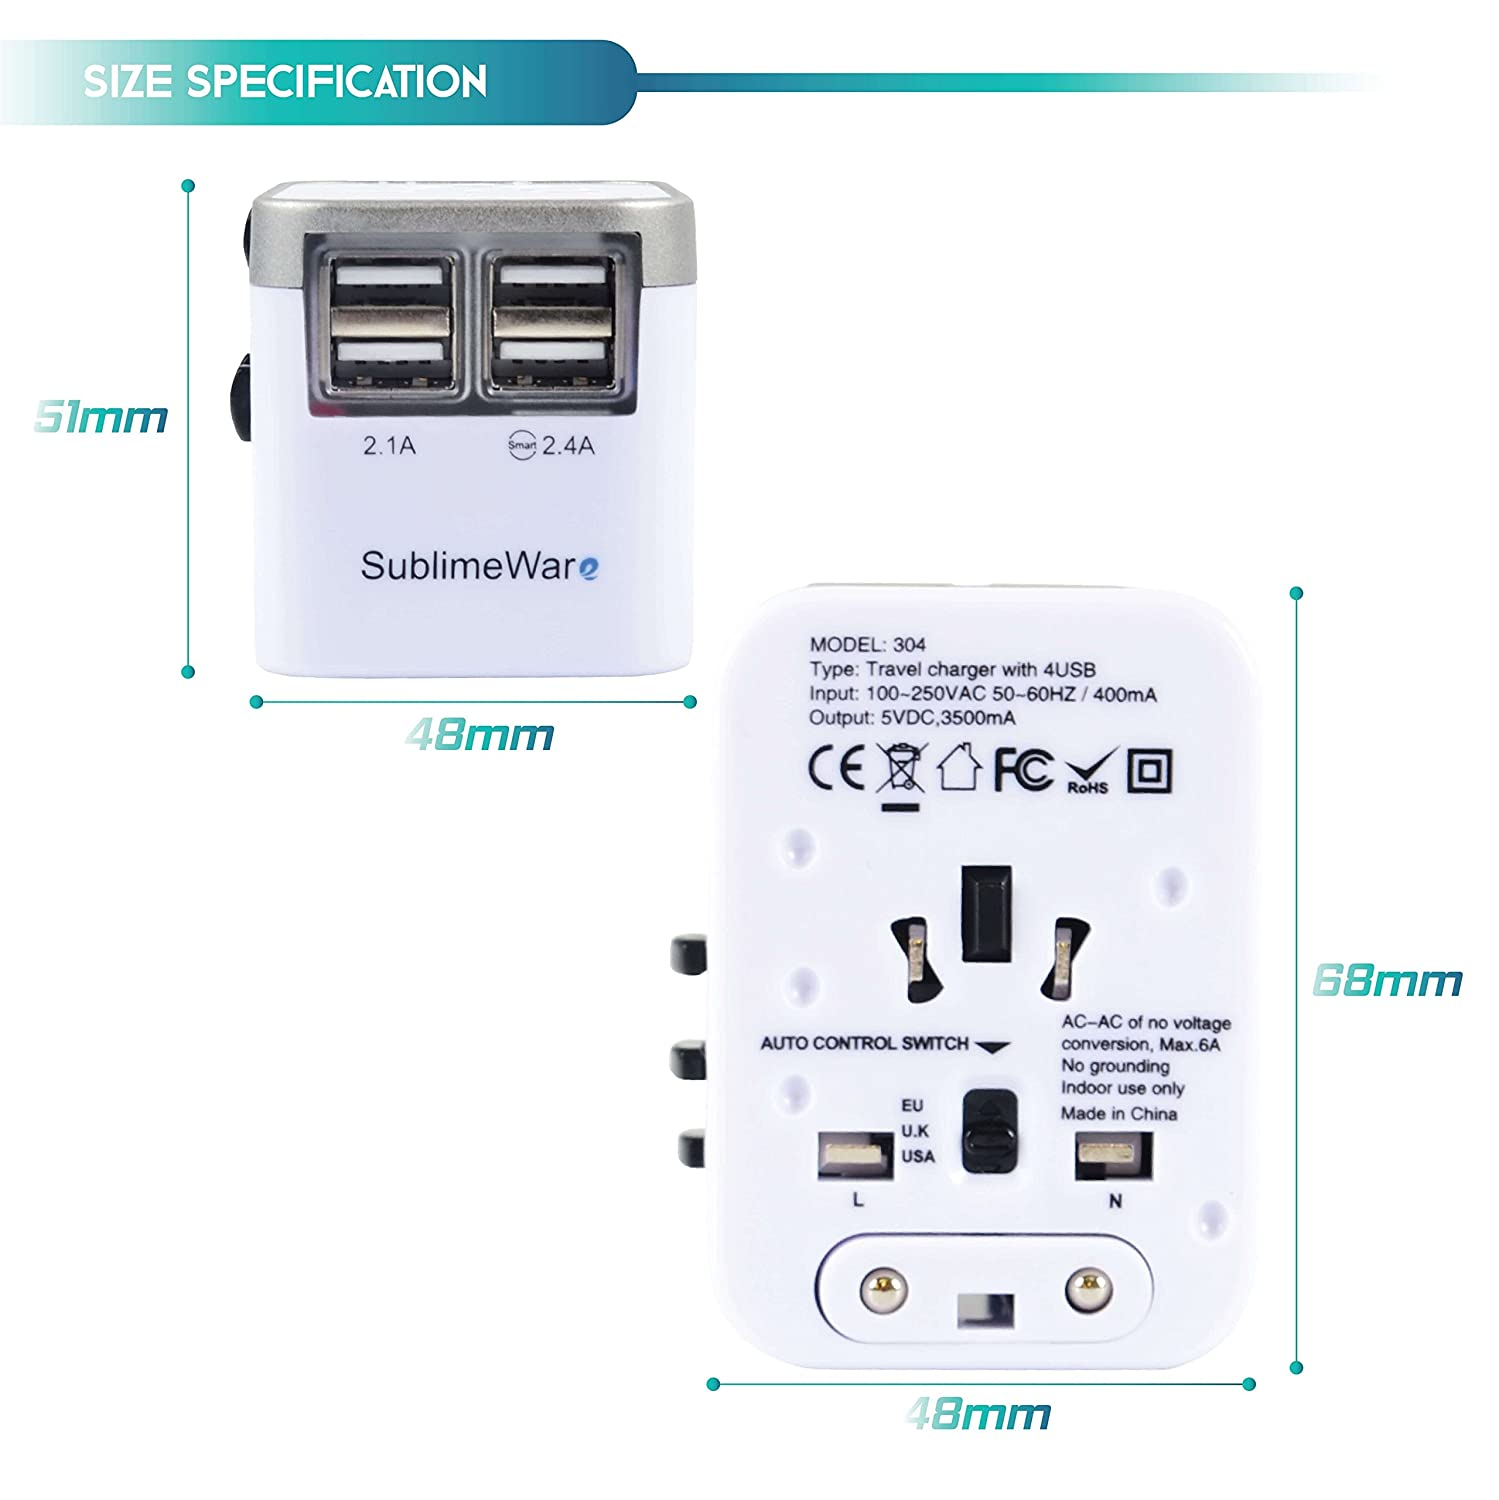 - International Travel SandBlack Silver w//USB Ports Work for 150+ Countries 220 Volt Adapter Travel Adapter Type C A Type G I f UK Japan China EU Europe European by SublimeWare Power Plug Adapter